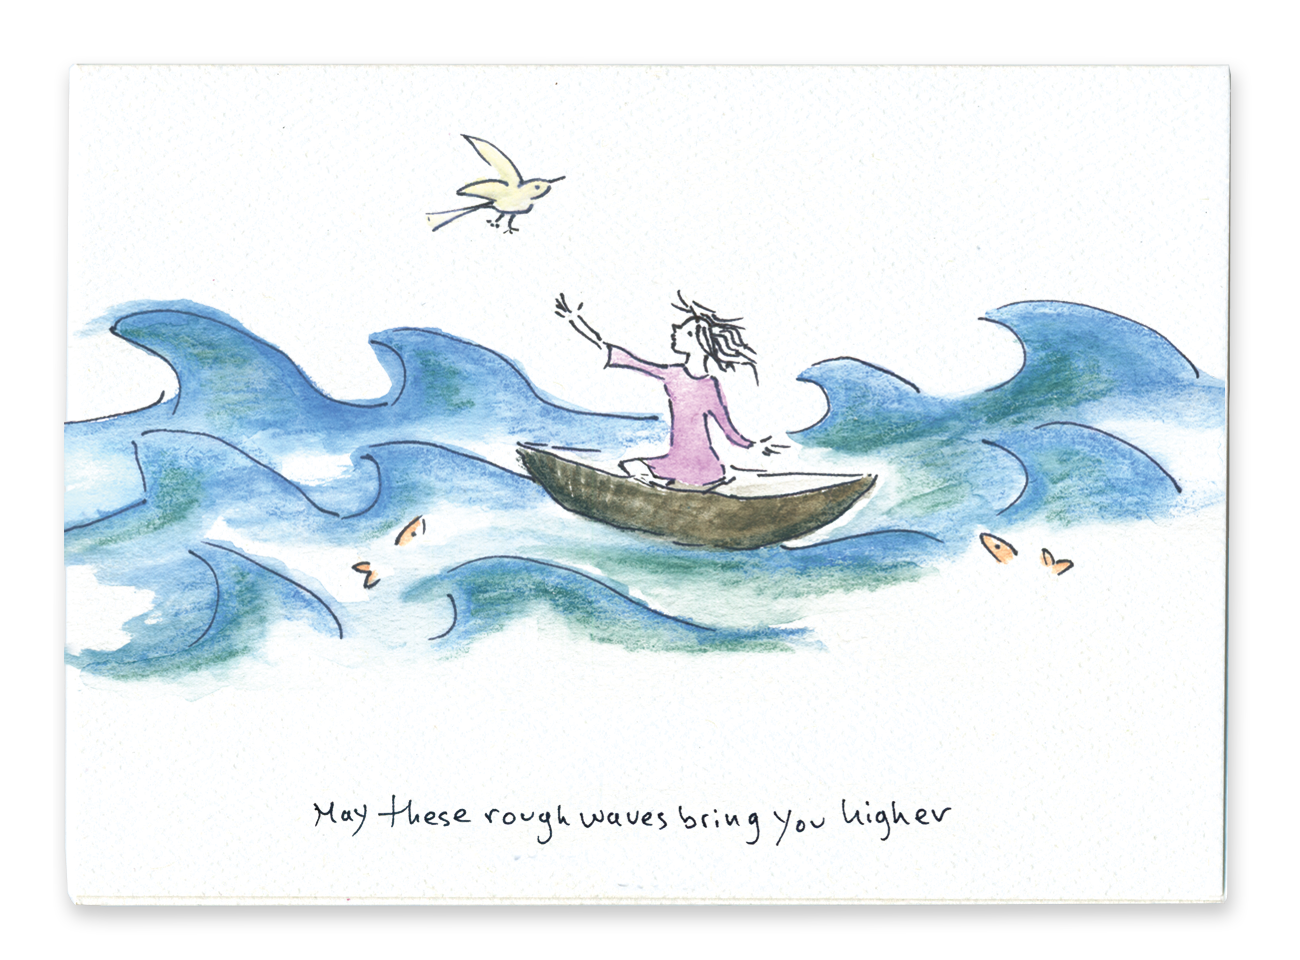 May These Rough Waves Bring You Higher